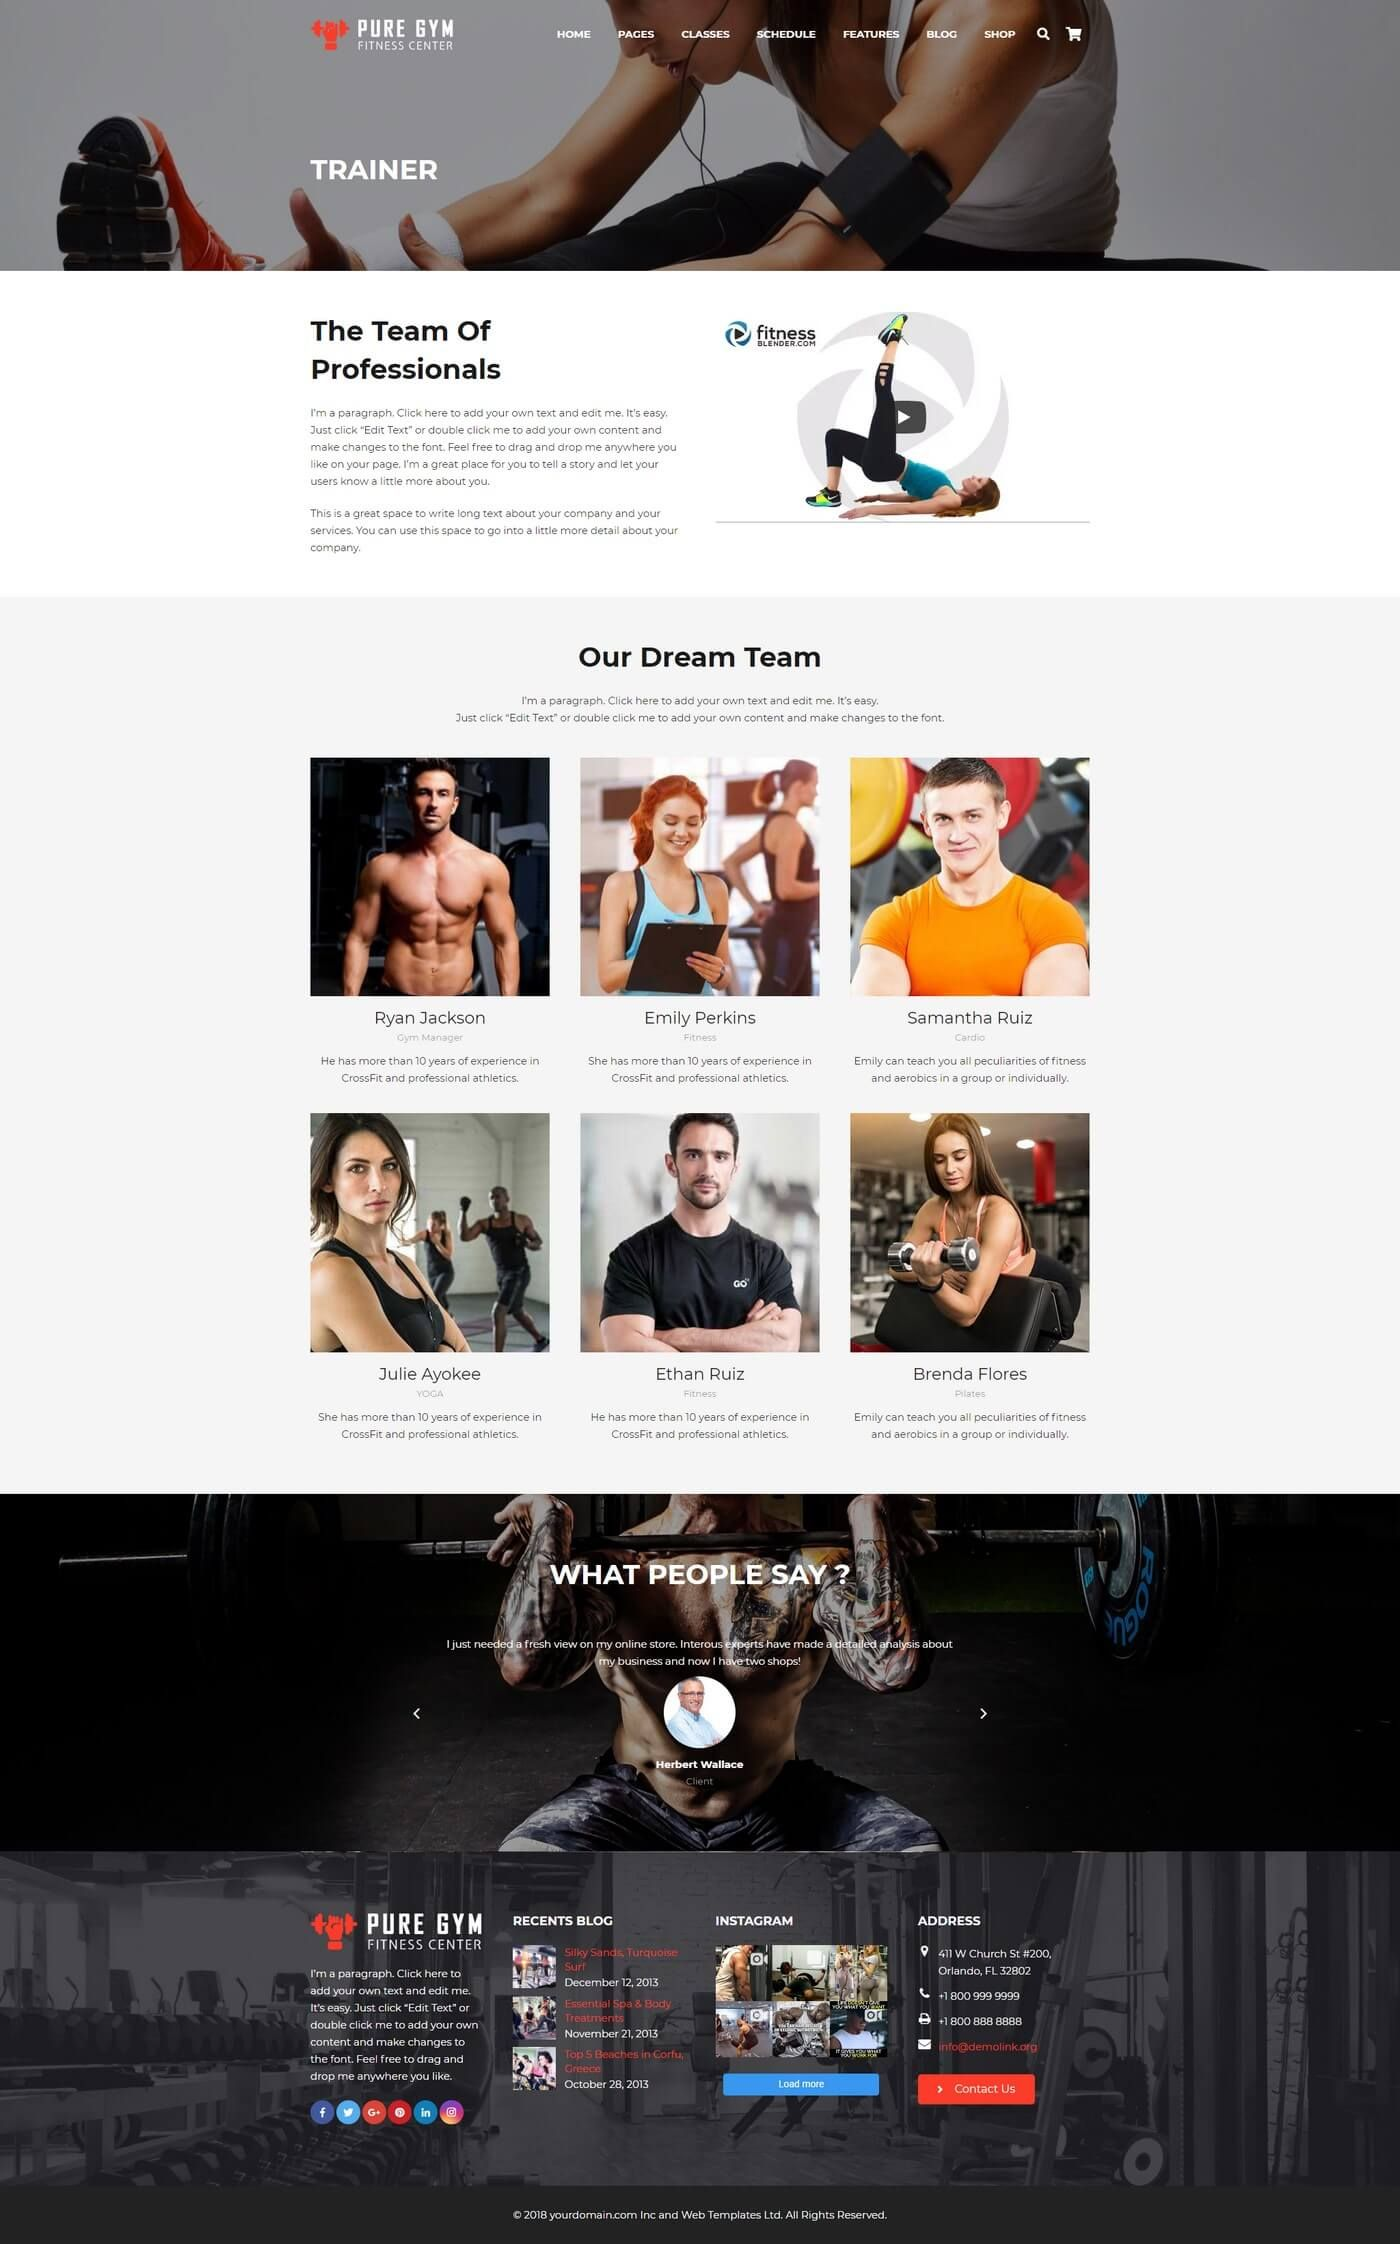 PureGym - Gym Fitness WordPress Theme Screenshot 3